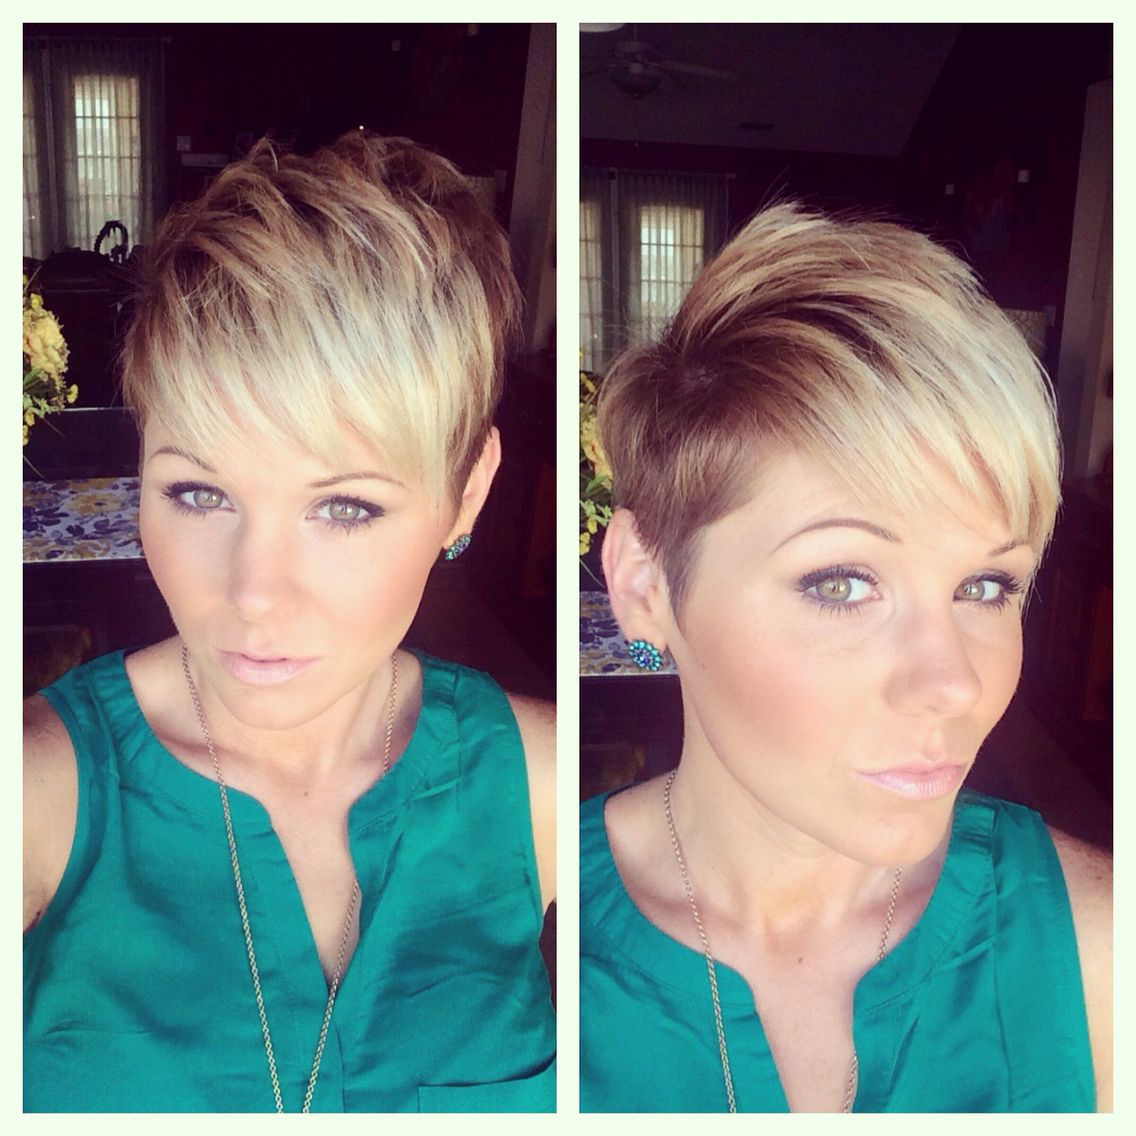 Shaved Side Pixie Hair Pinterest Pixies Short Hair And Hair Style